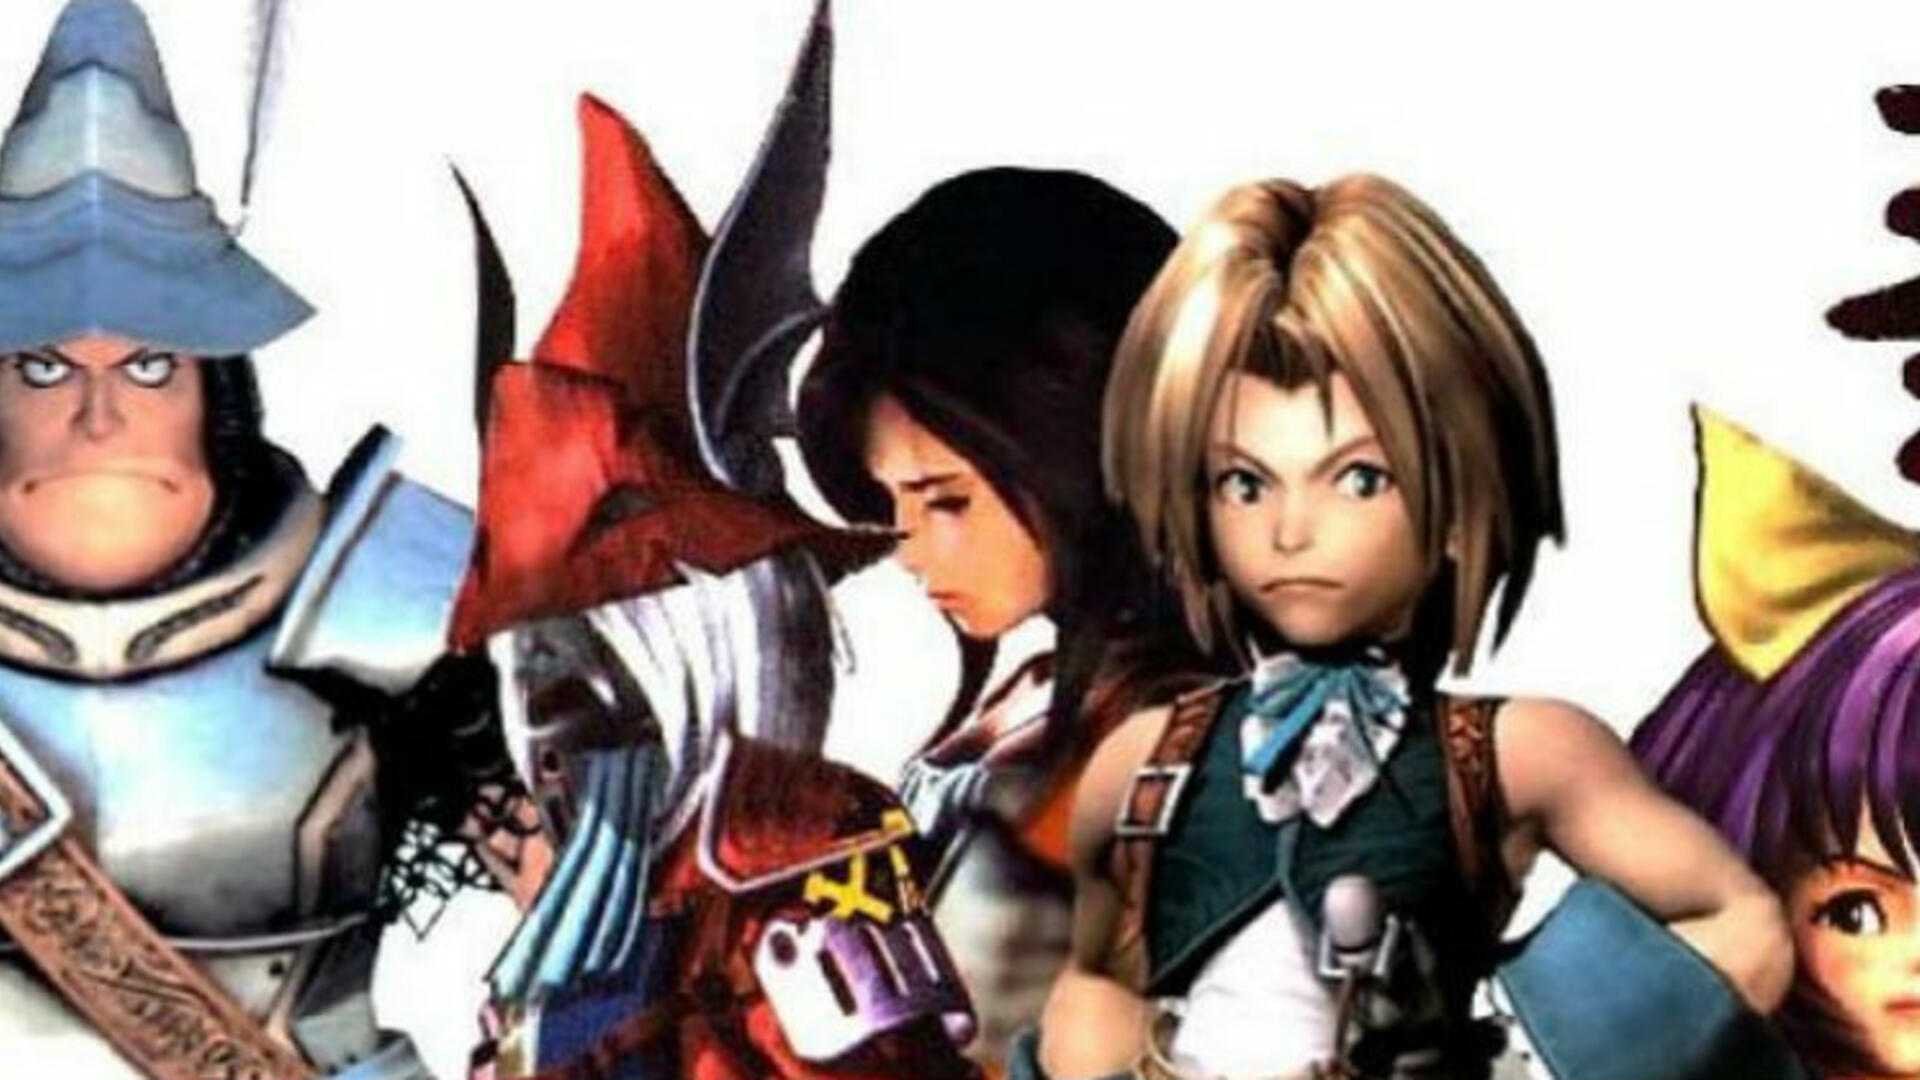 Final Fantasy IX is On Mobile, But You Need High-End Hardware to Run It